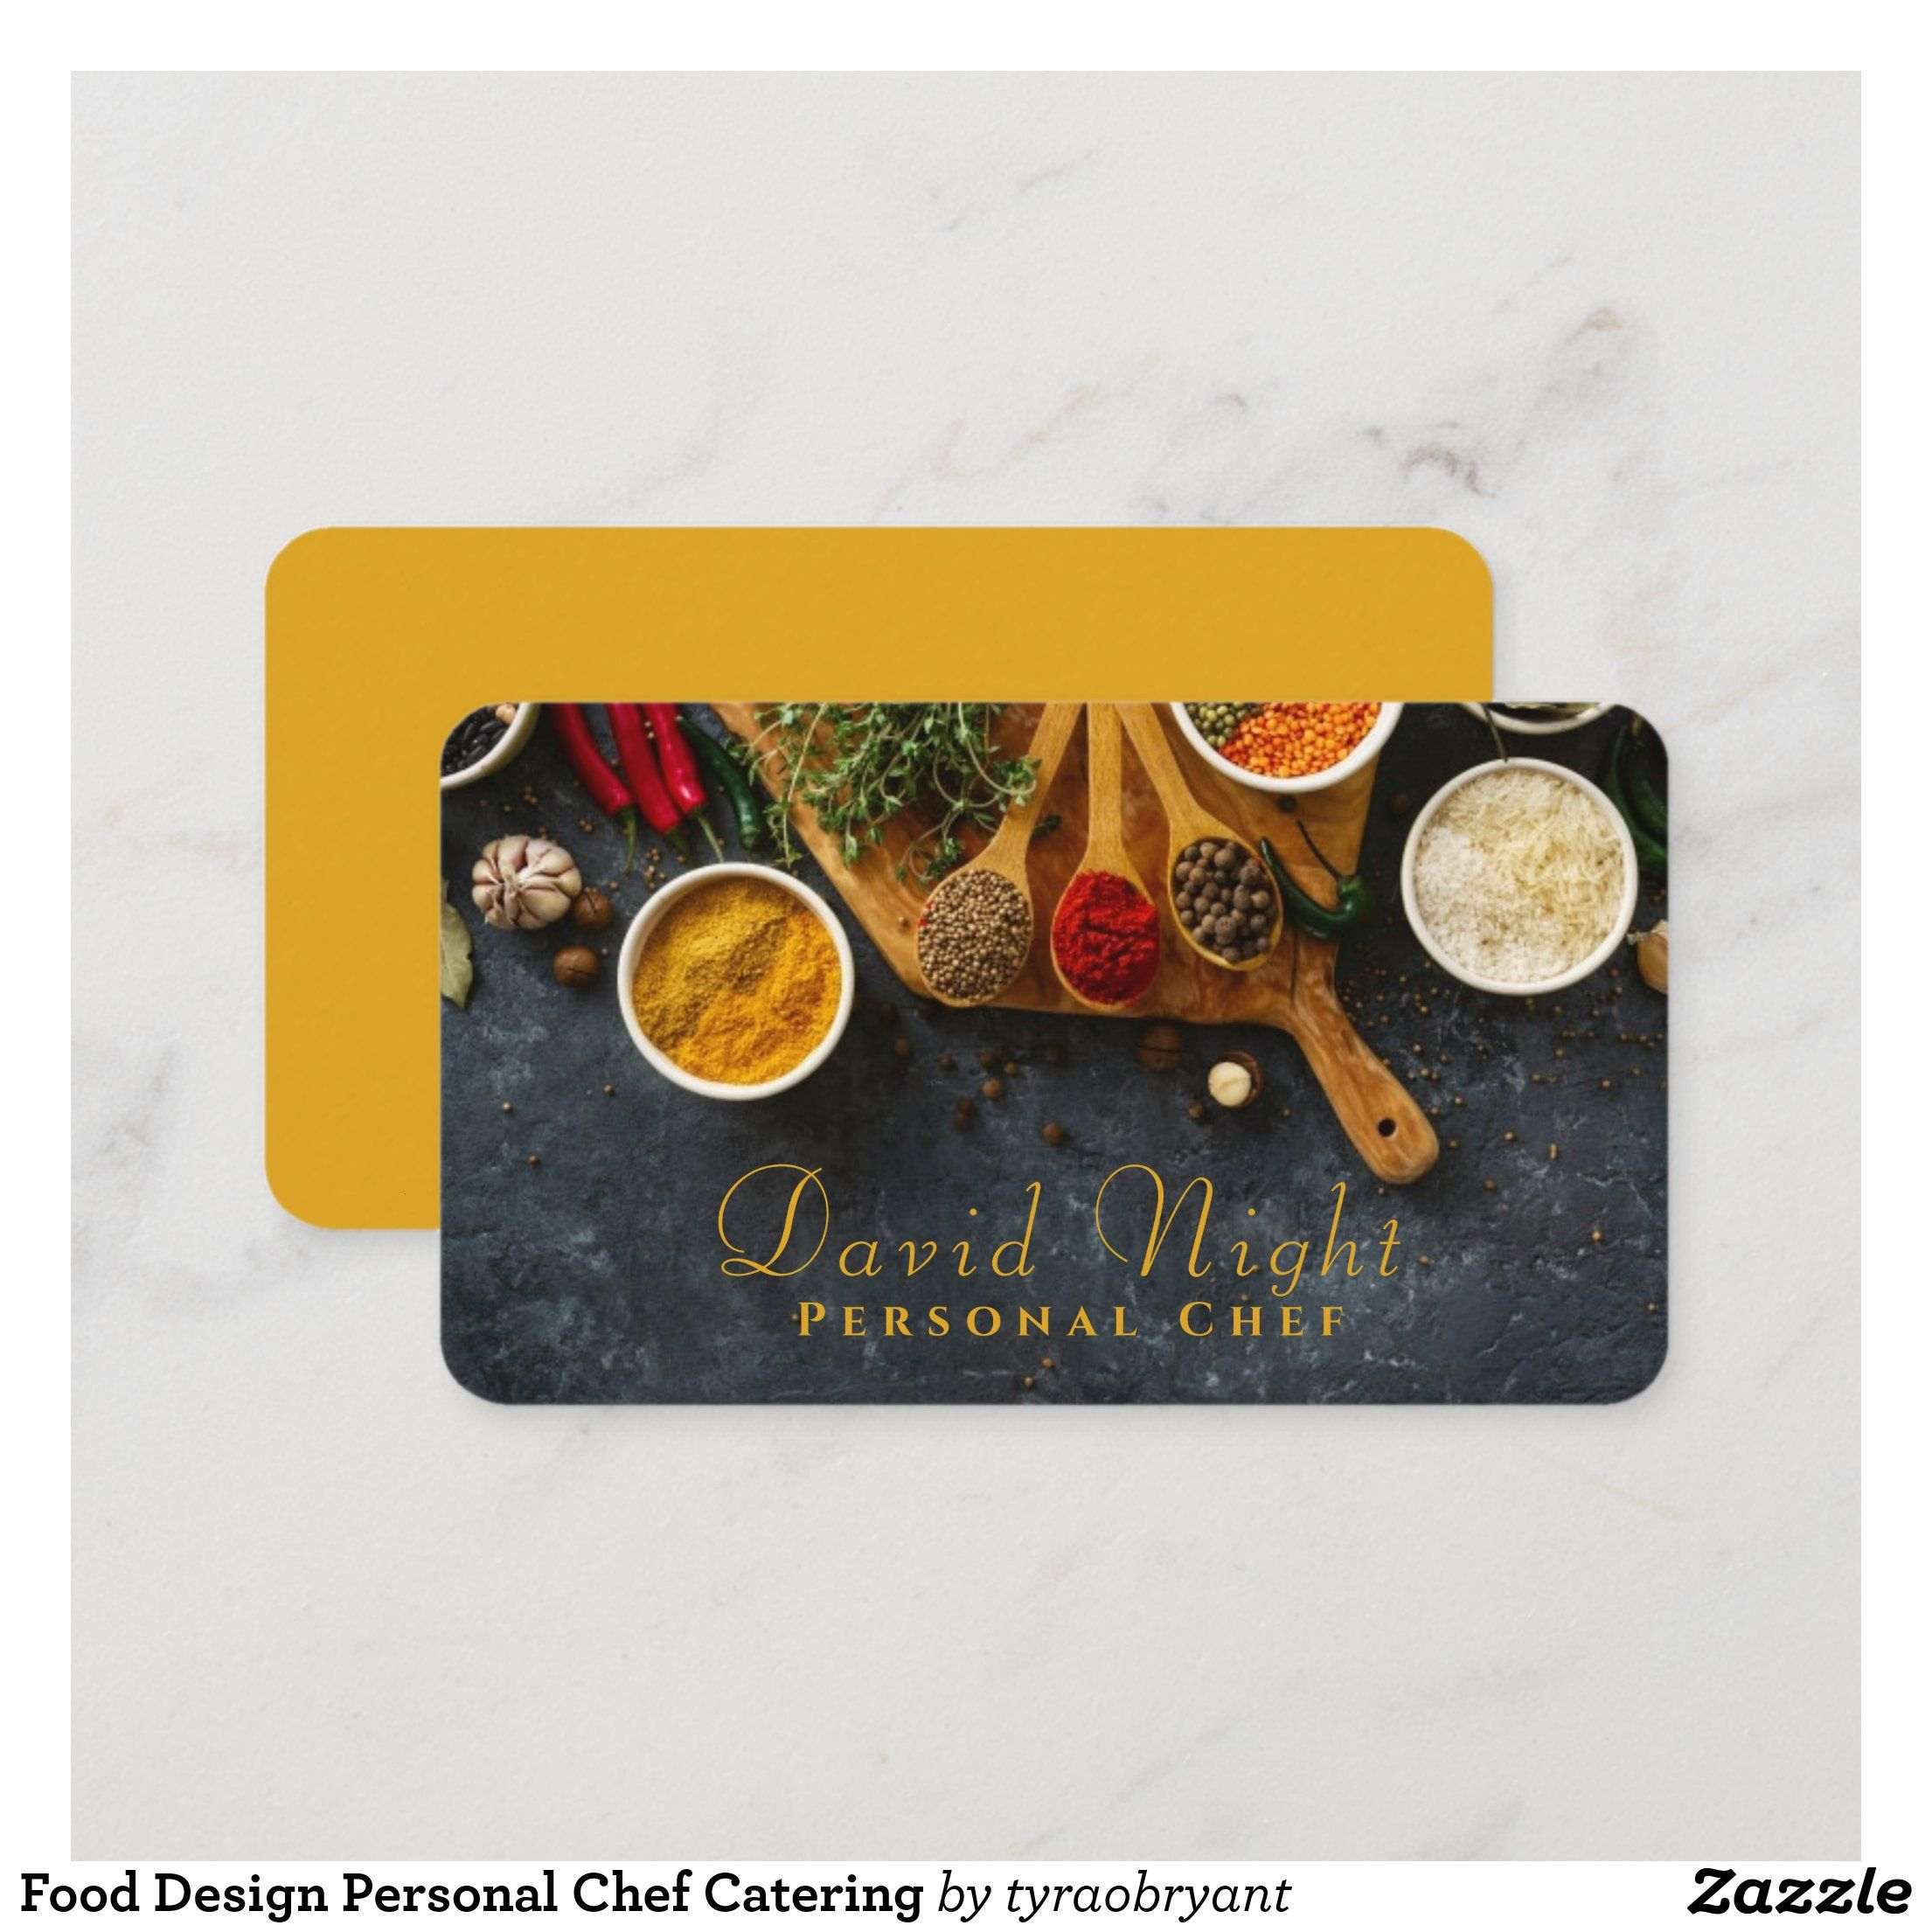 Food Design Personal Chef Catering Business Card Zazzle Com In 2021 Catering Business Cards Food Business Card Design Food Business Card